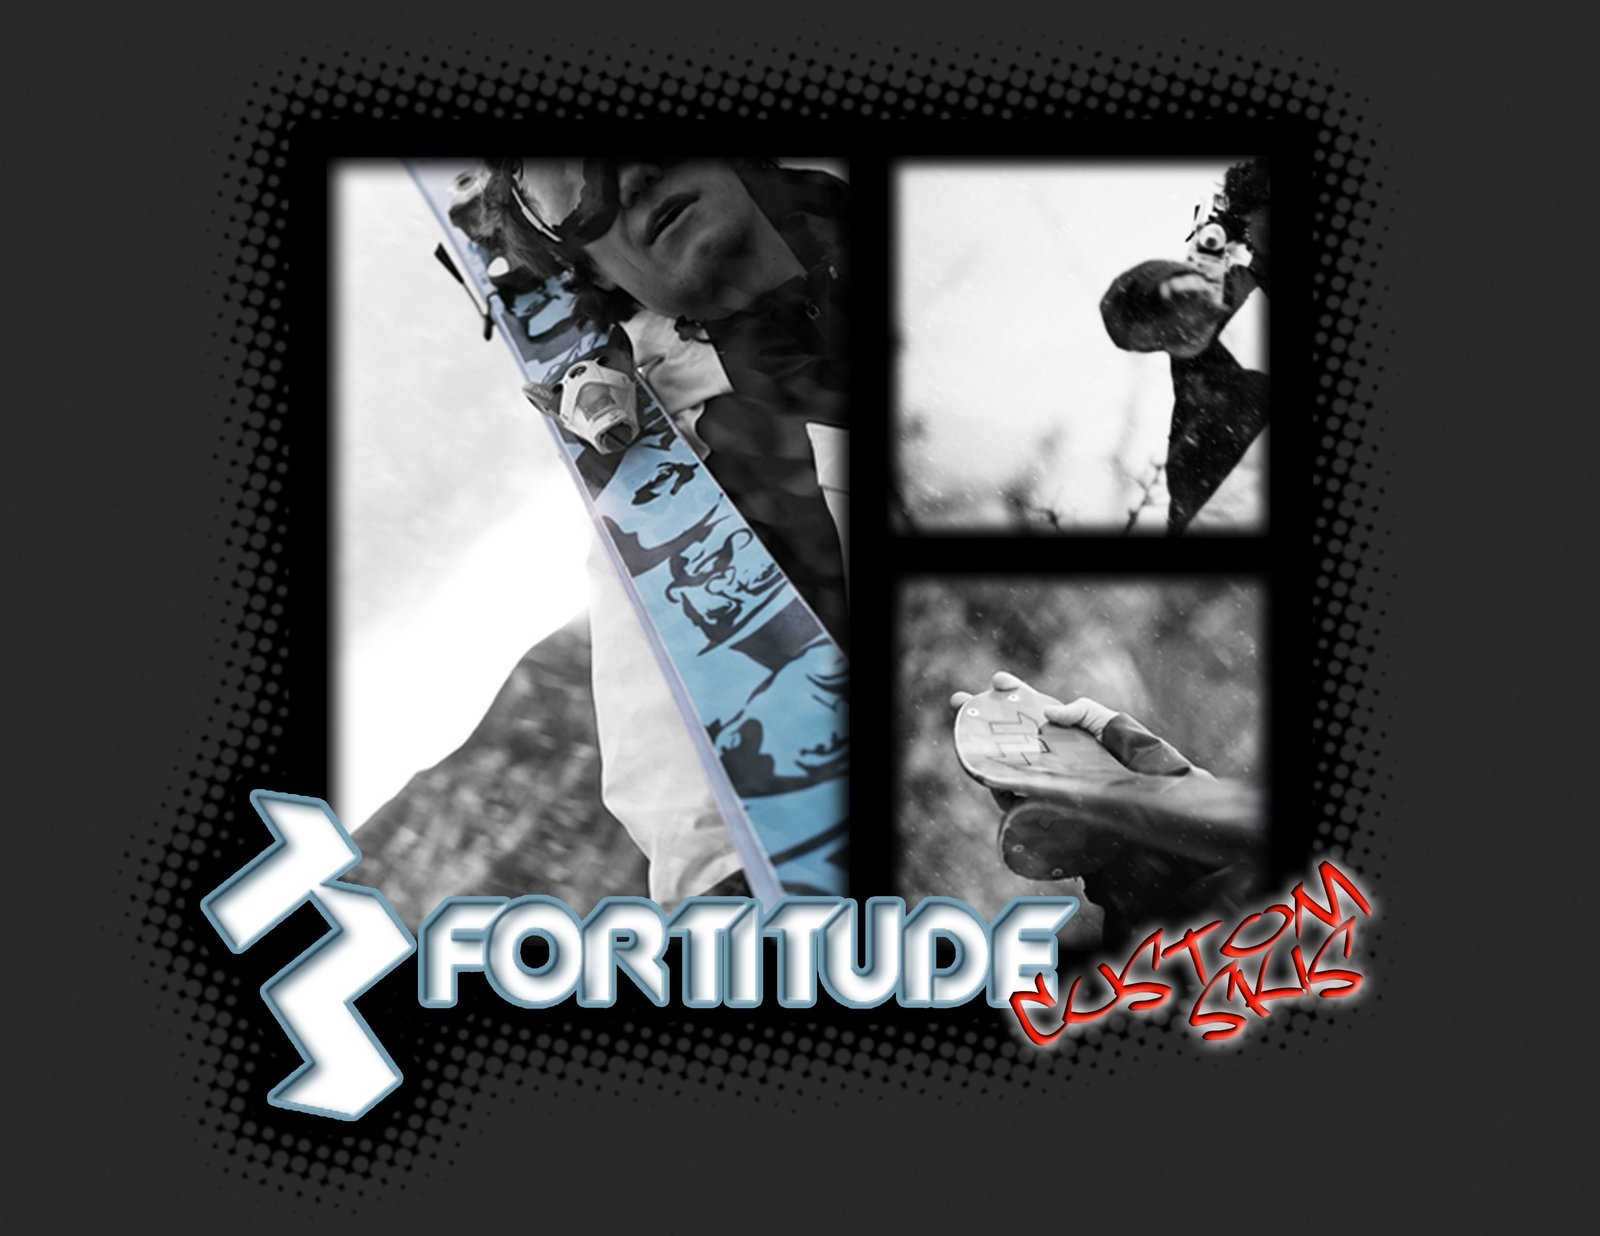 Fortitude Custom Skis